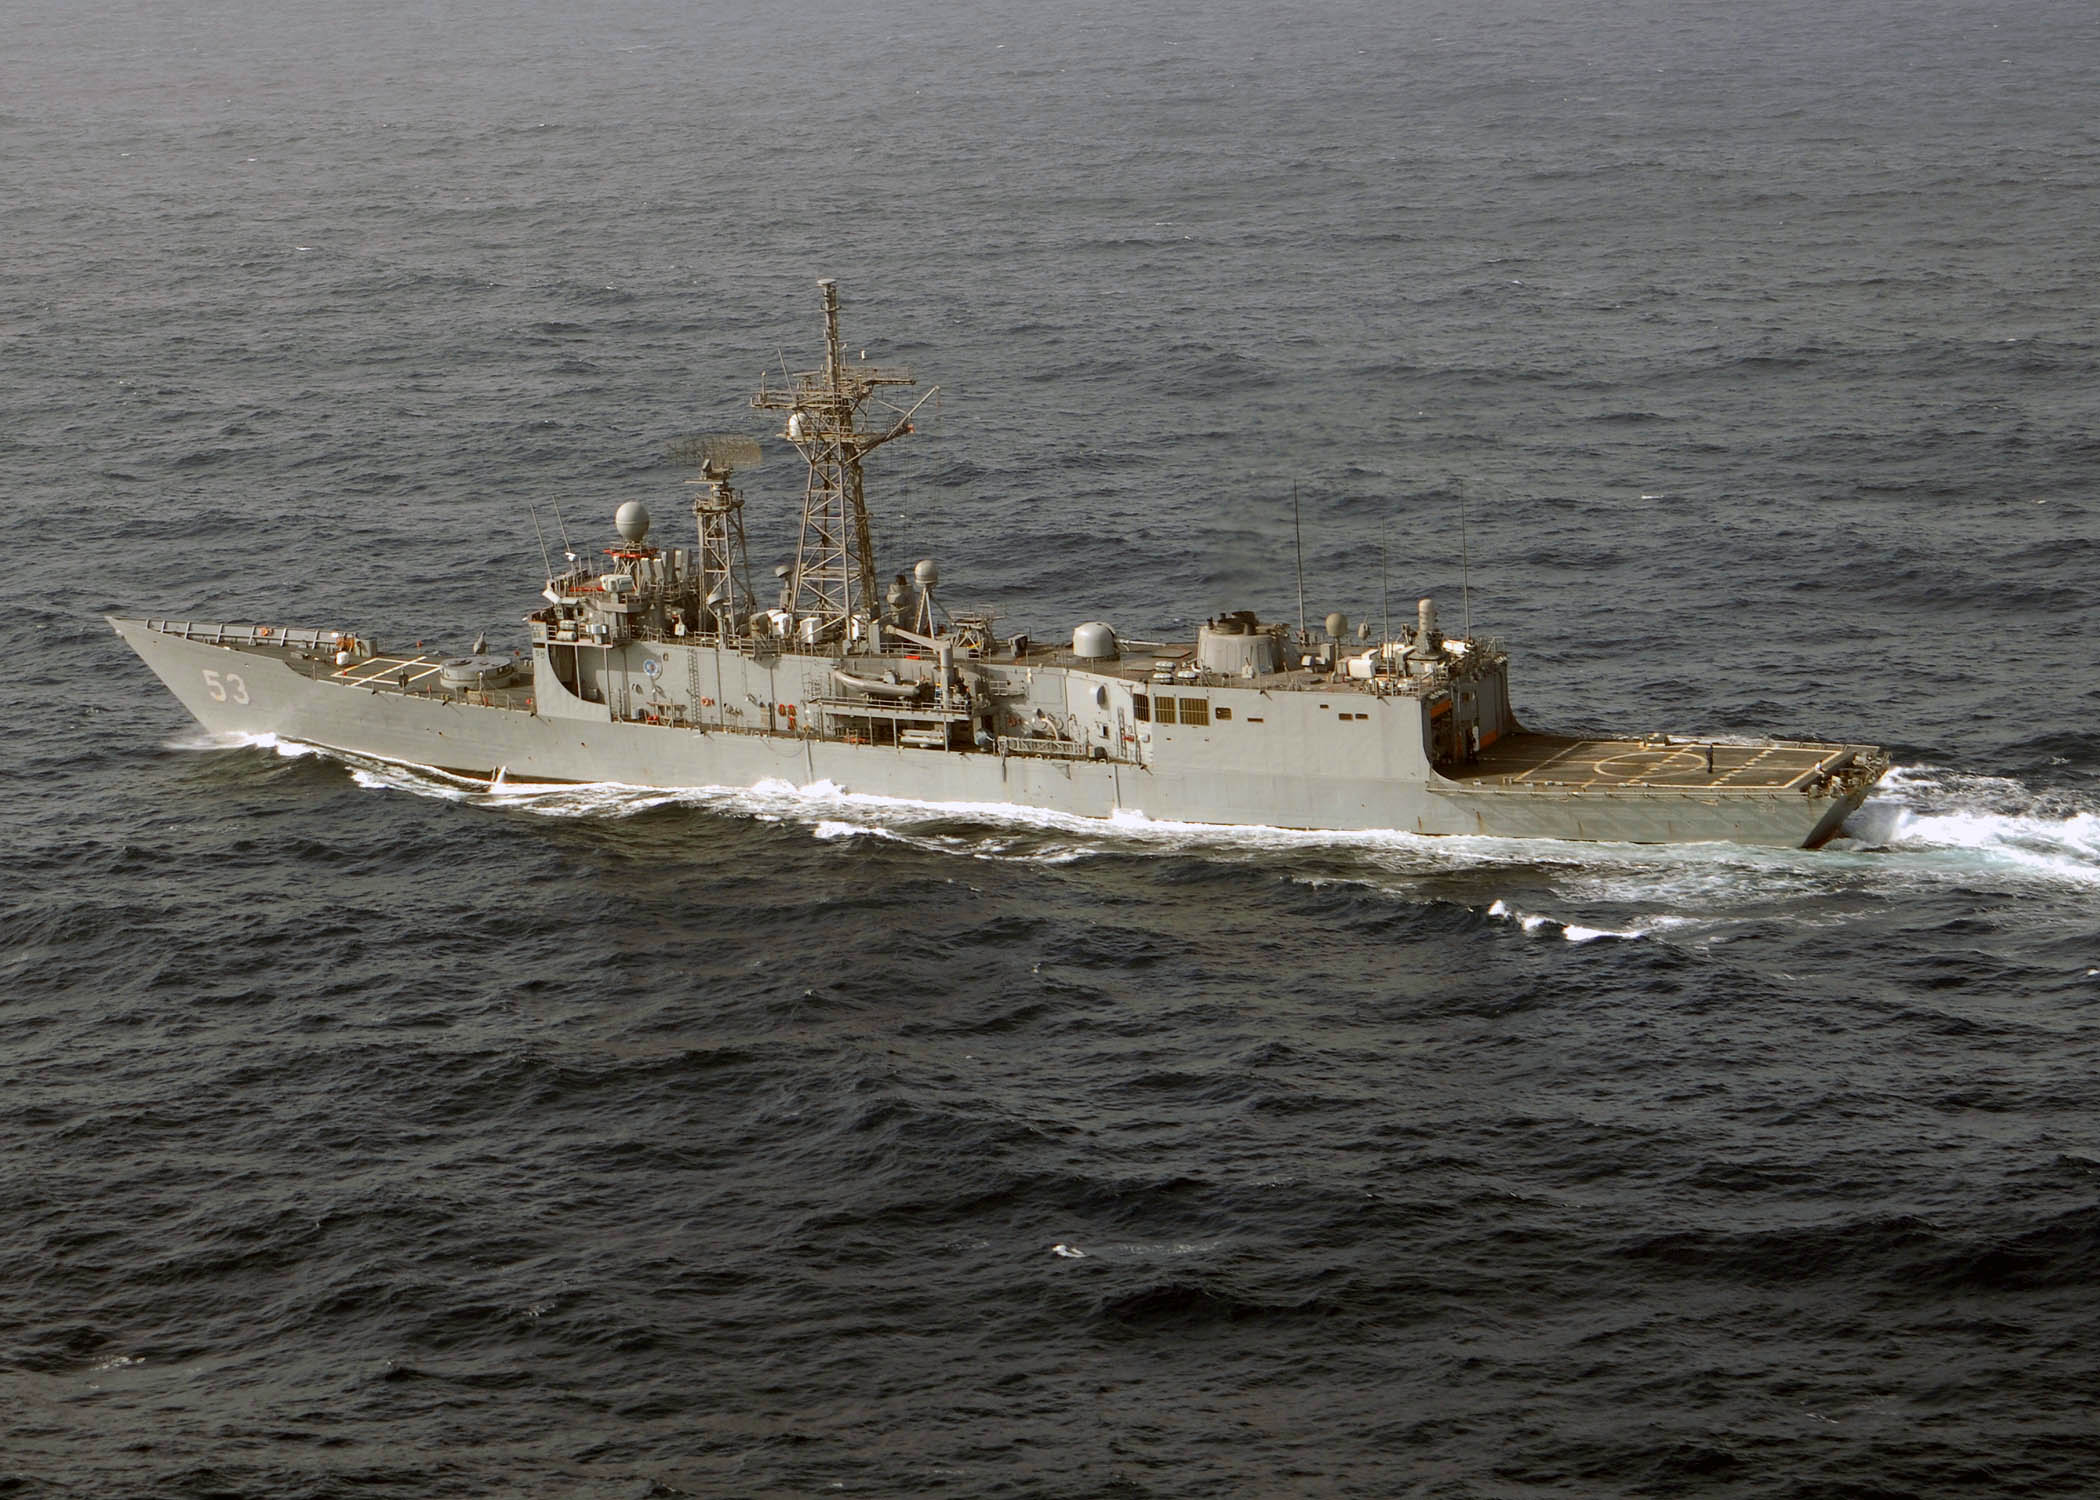 ¿Como creen que debería ser la Armada Argentina? US_Navy_050625-N-5526M-004_The_Oliver_Hazard_Perry-class_frigate_USS_Hawes_(FFG_53)_underway_while_participating_in_Operation_Inspired_Siren